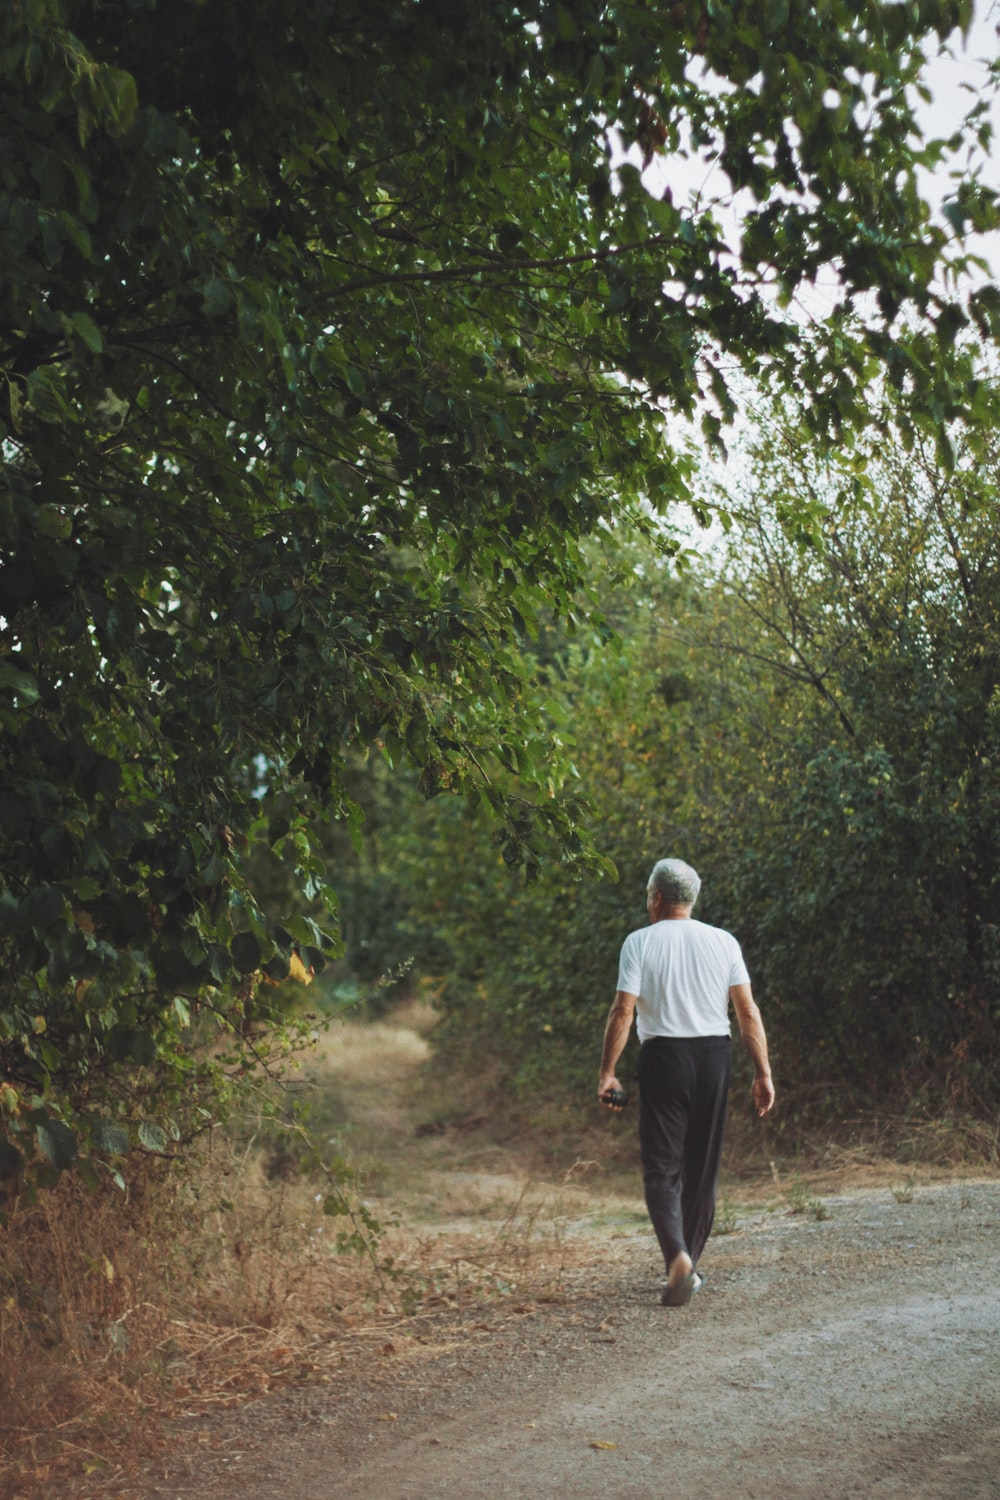 man in white shirt and black pants walking on dirt road